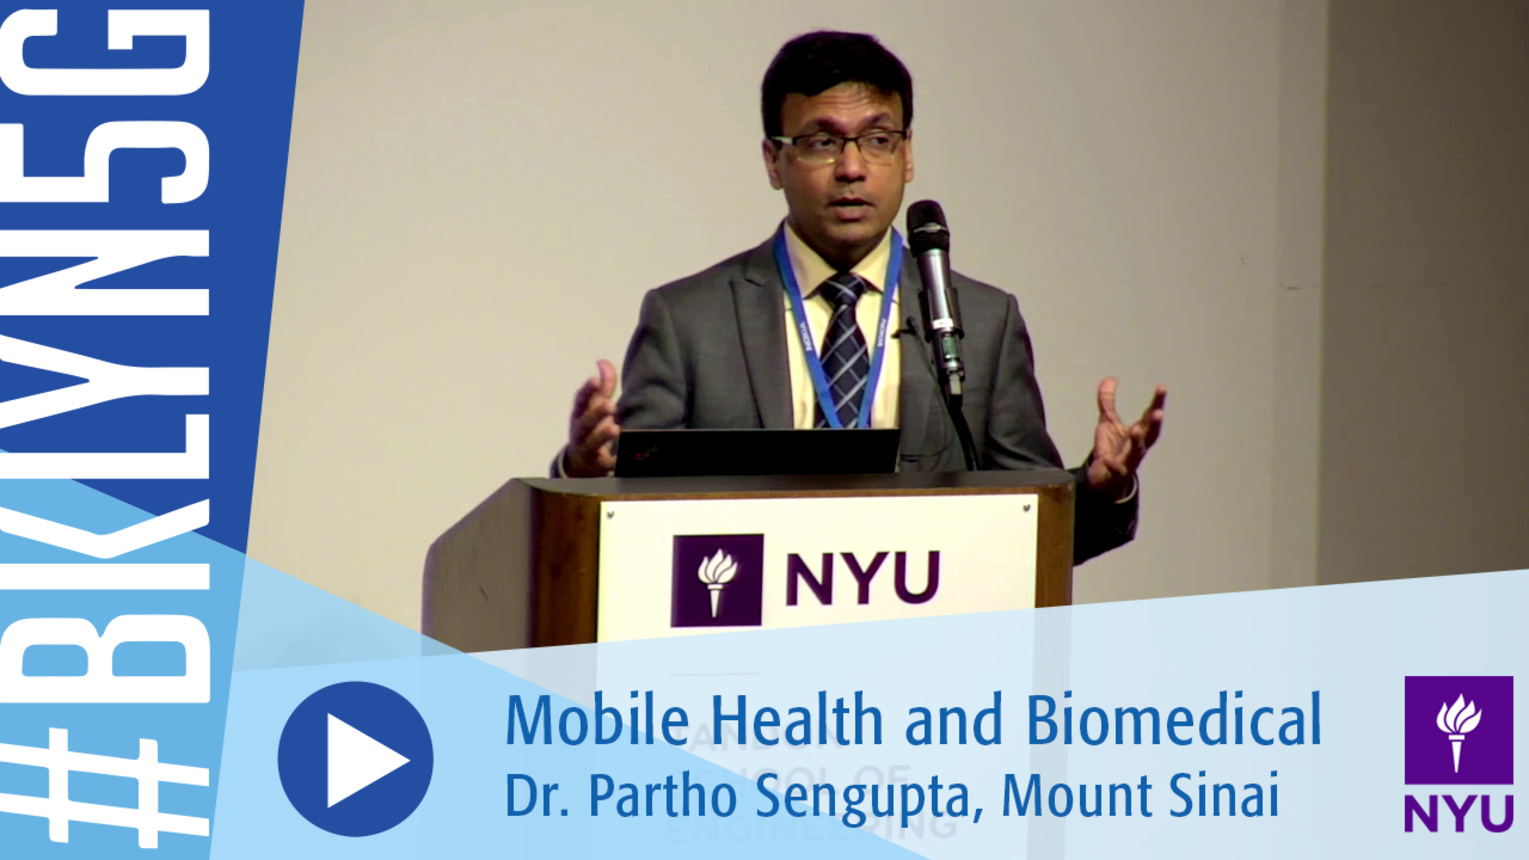 Brooklyn 5G 2016: Dr. Partho Sengupta on Mobile Health Biomedical Imaging